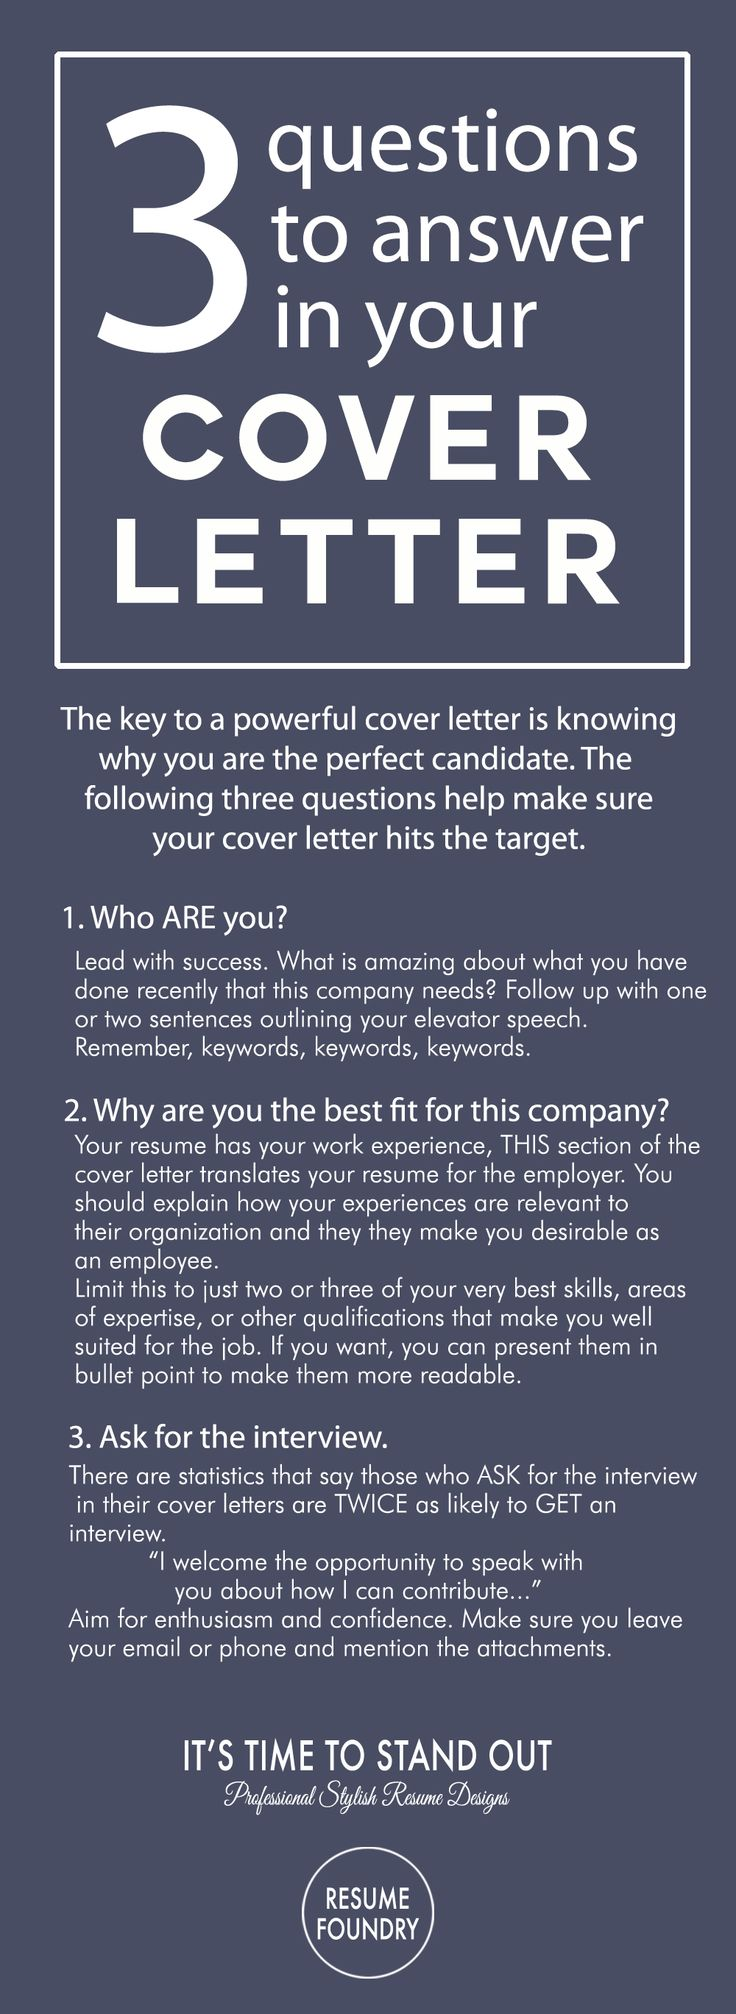 Cover letter help desk manager  Cover Letter Builder  a free     Allstate Claims Adjuster Cover Letter Fax Cover Sheet For Word   Auto  Appraiser Resume Sample Scholarship Letter Entry Level Claims Adjuster  Samples